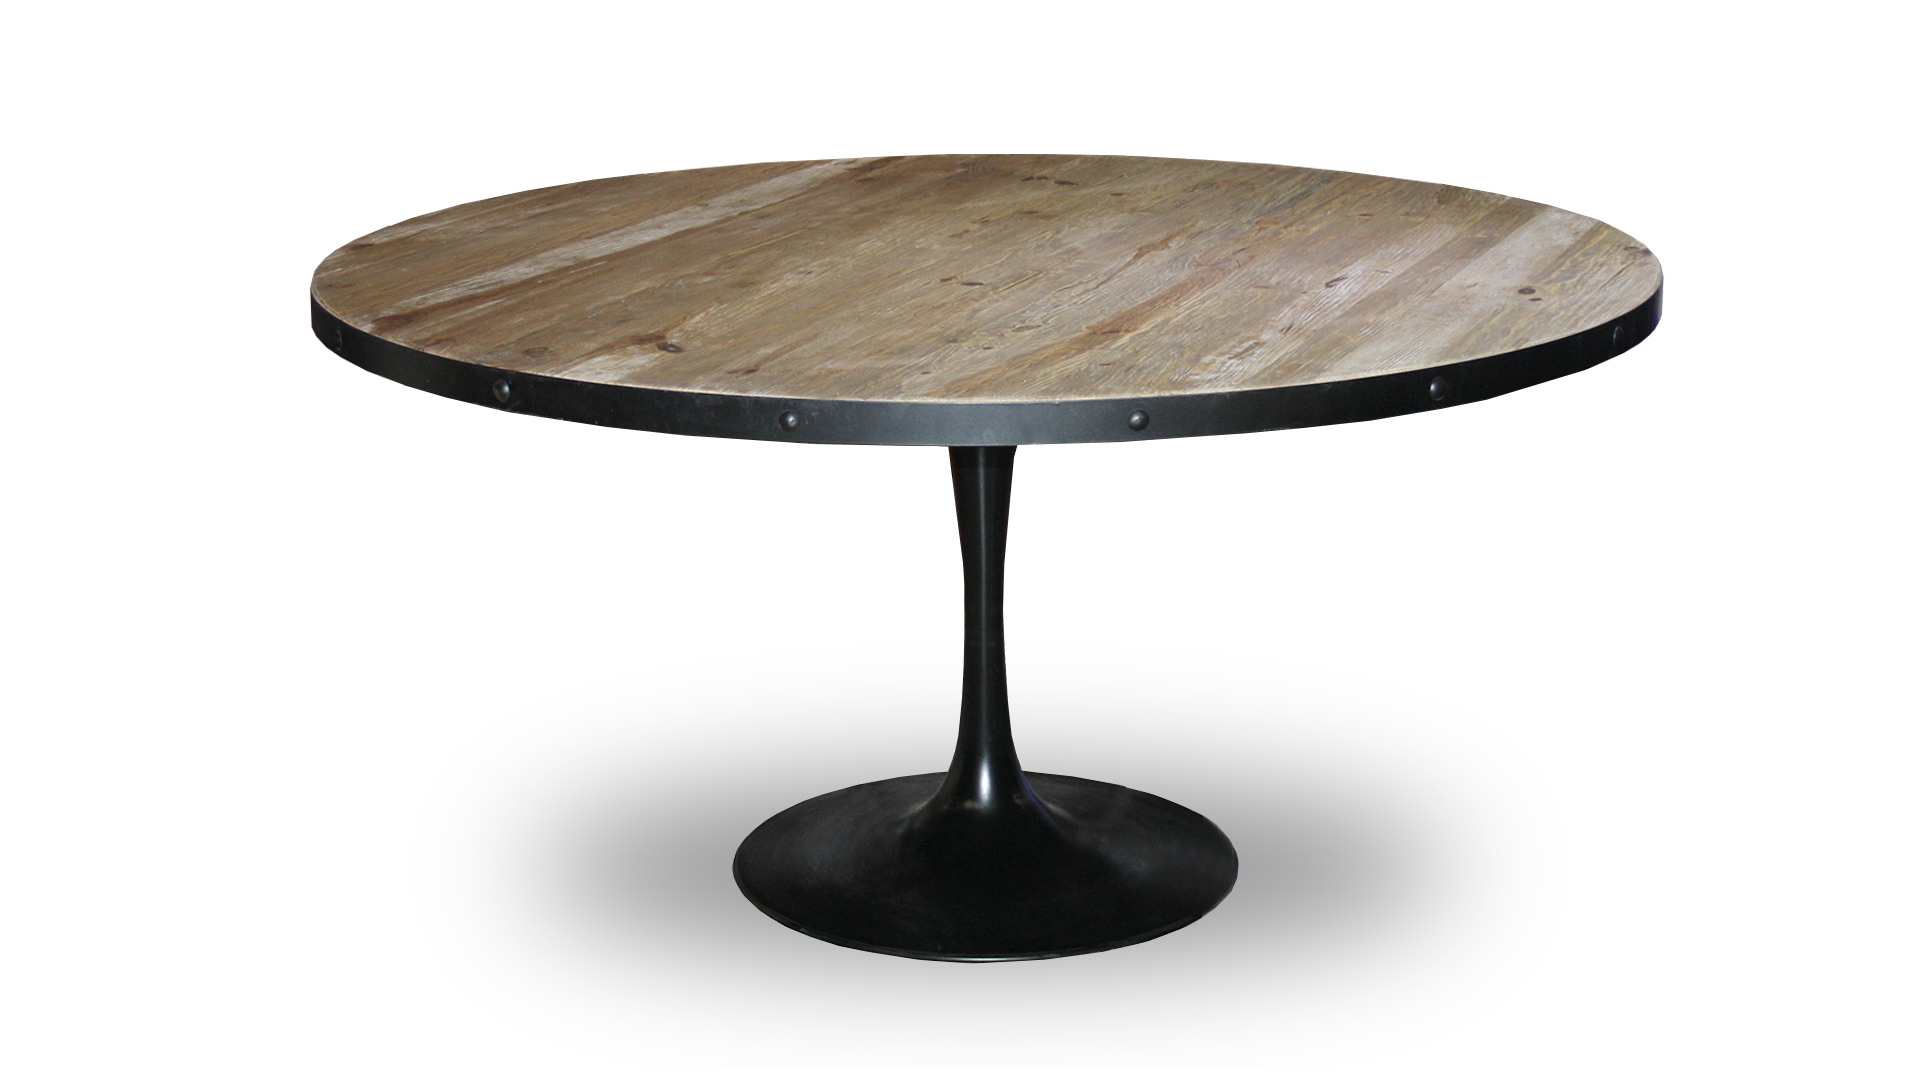 Le blog mobiliermoss cr er un coin repas convivial for Table salle a manger ronde a rallonge